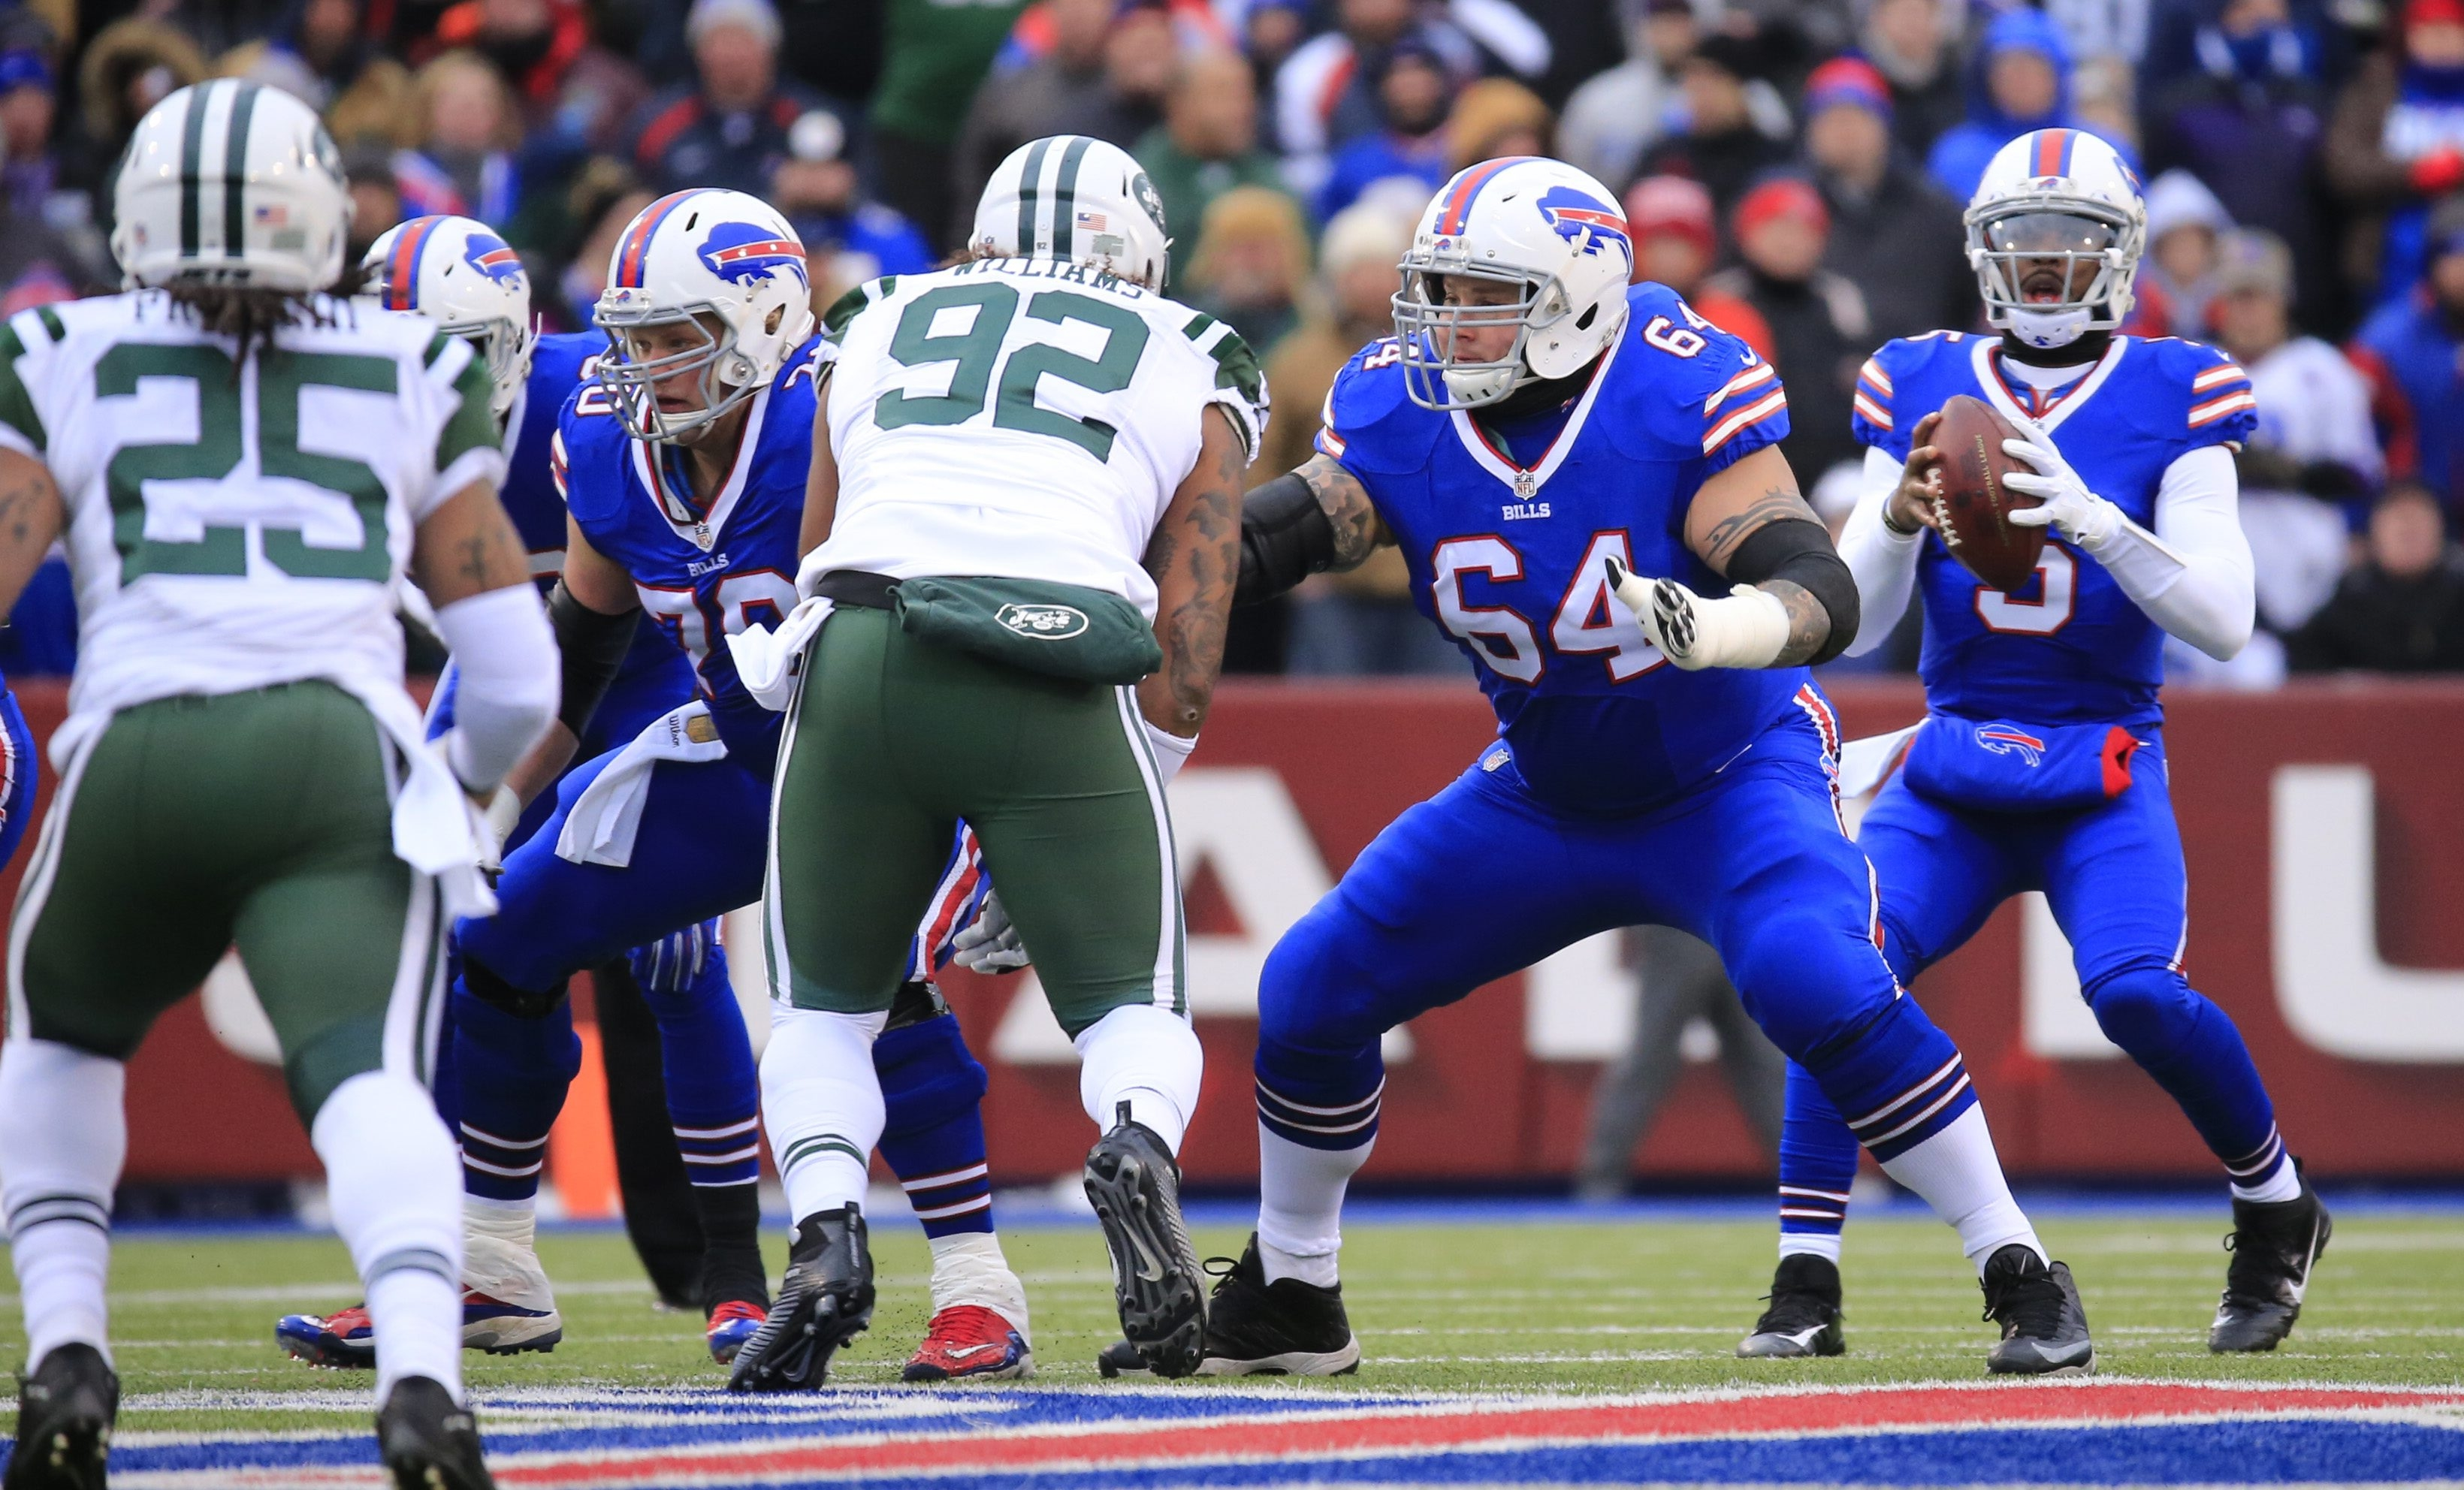 Eric Wood and Richie Incognito were part of a Bills offensive line that took a step forward during the current season.